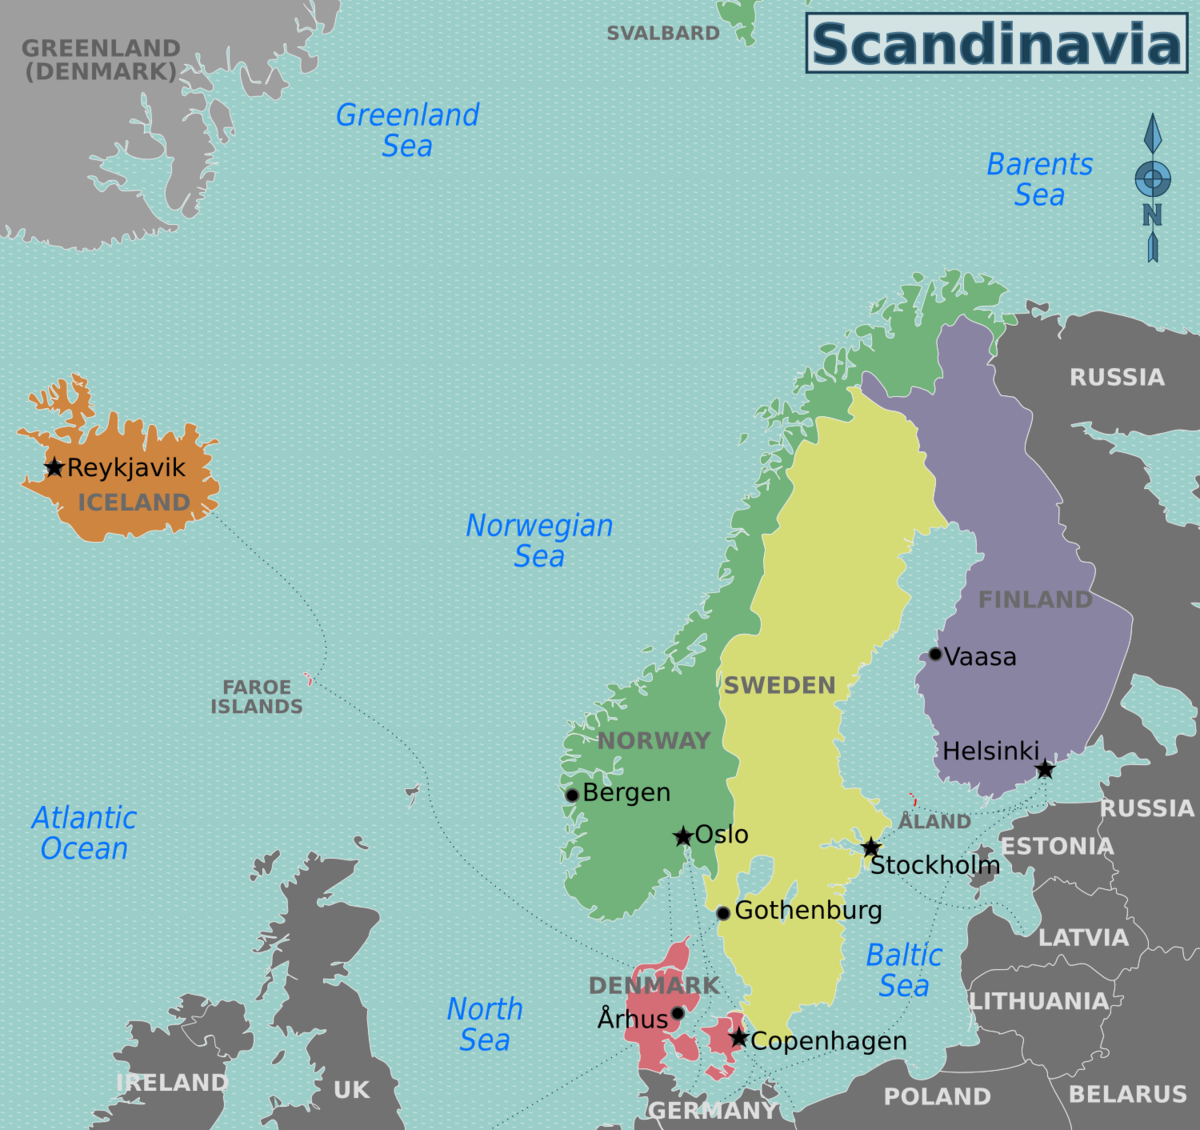 Scandinavian Natural Resources